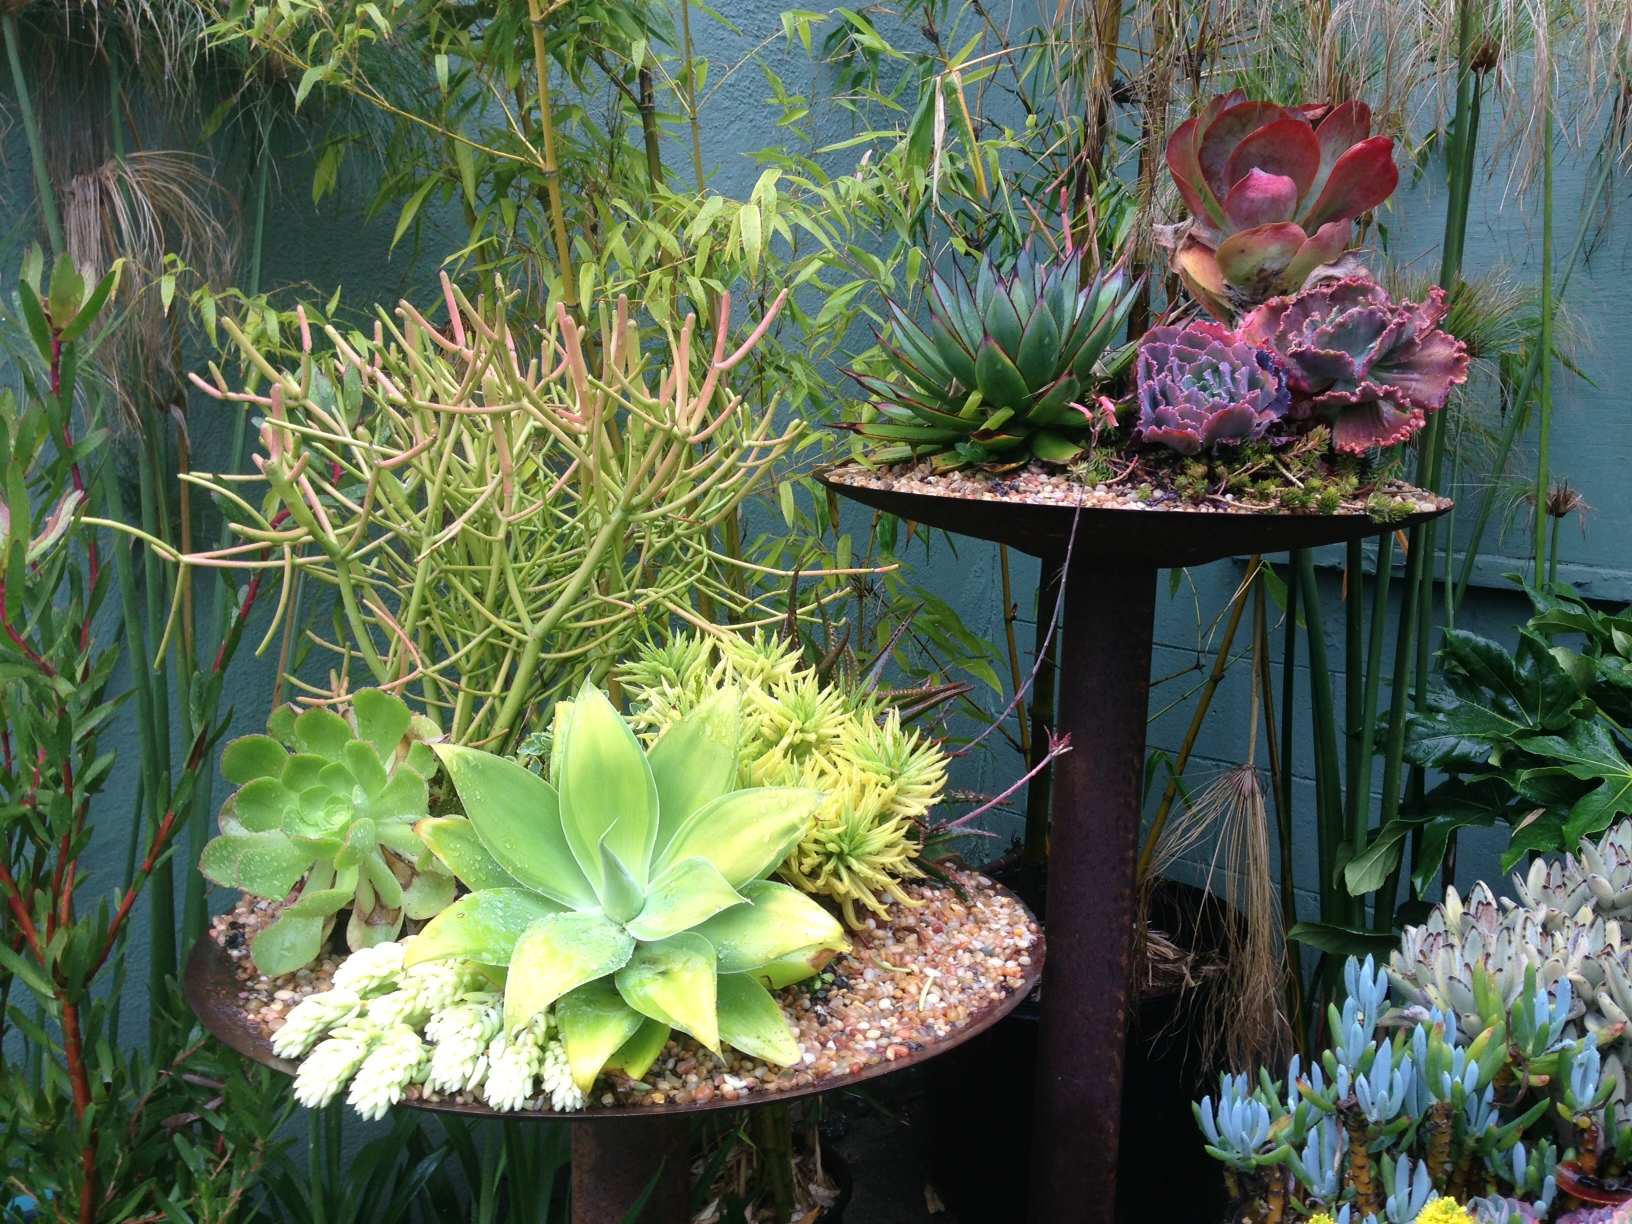 Container gardening gardening tips for the santa cruz mountains - How to make a succulent container garden ...